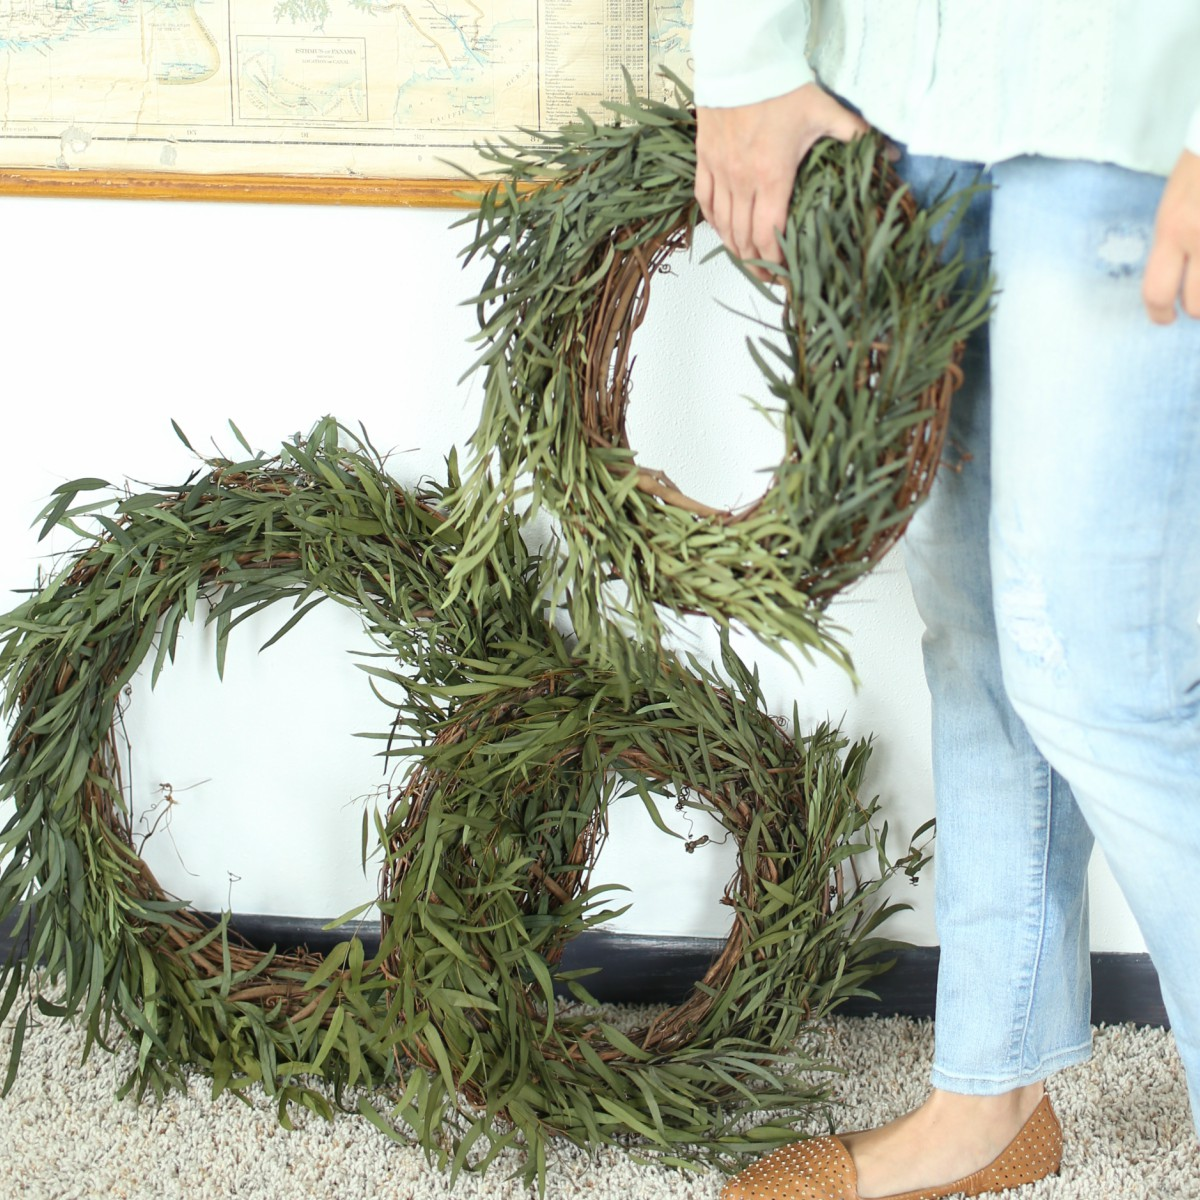 Decorate for the seasons with a simple willow wreath.